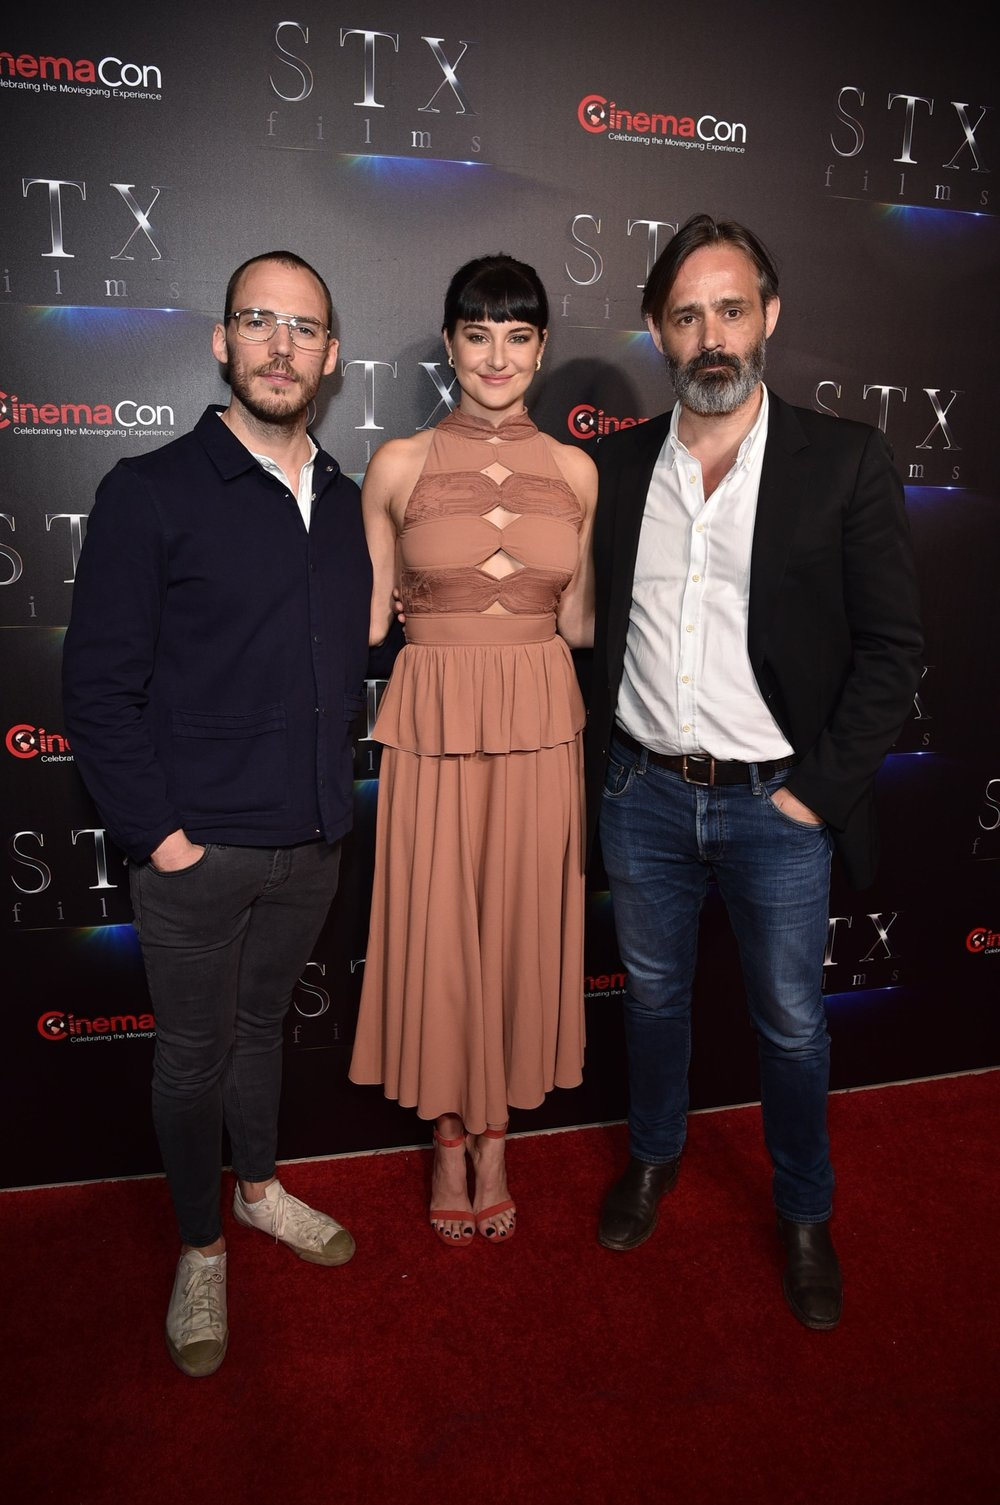 Sam Claflin, Shailene Woodley and Director Baltasar Kormákur attend STXfilms' 2018 CinemaCon Presentation at The Colosseum of Caesars Palace, Las Vegas, NV Tuesday, April 24, 2018.